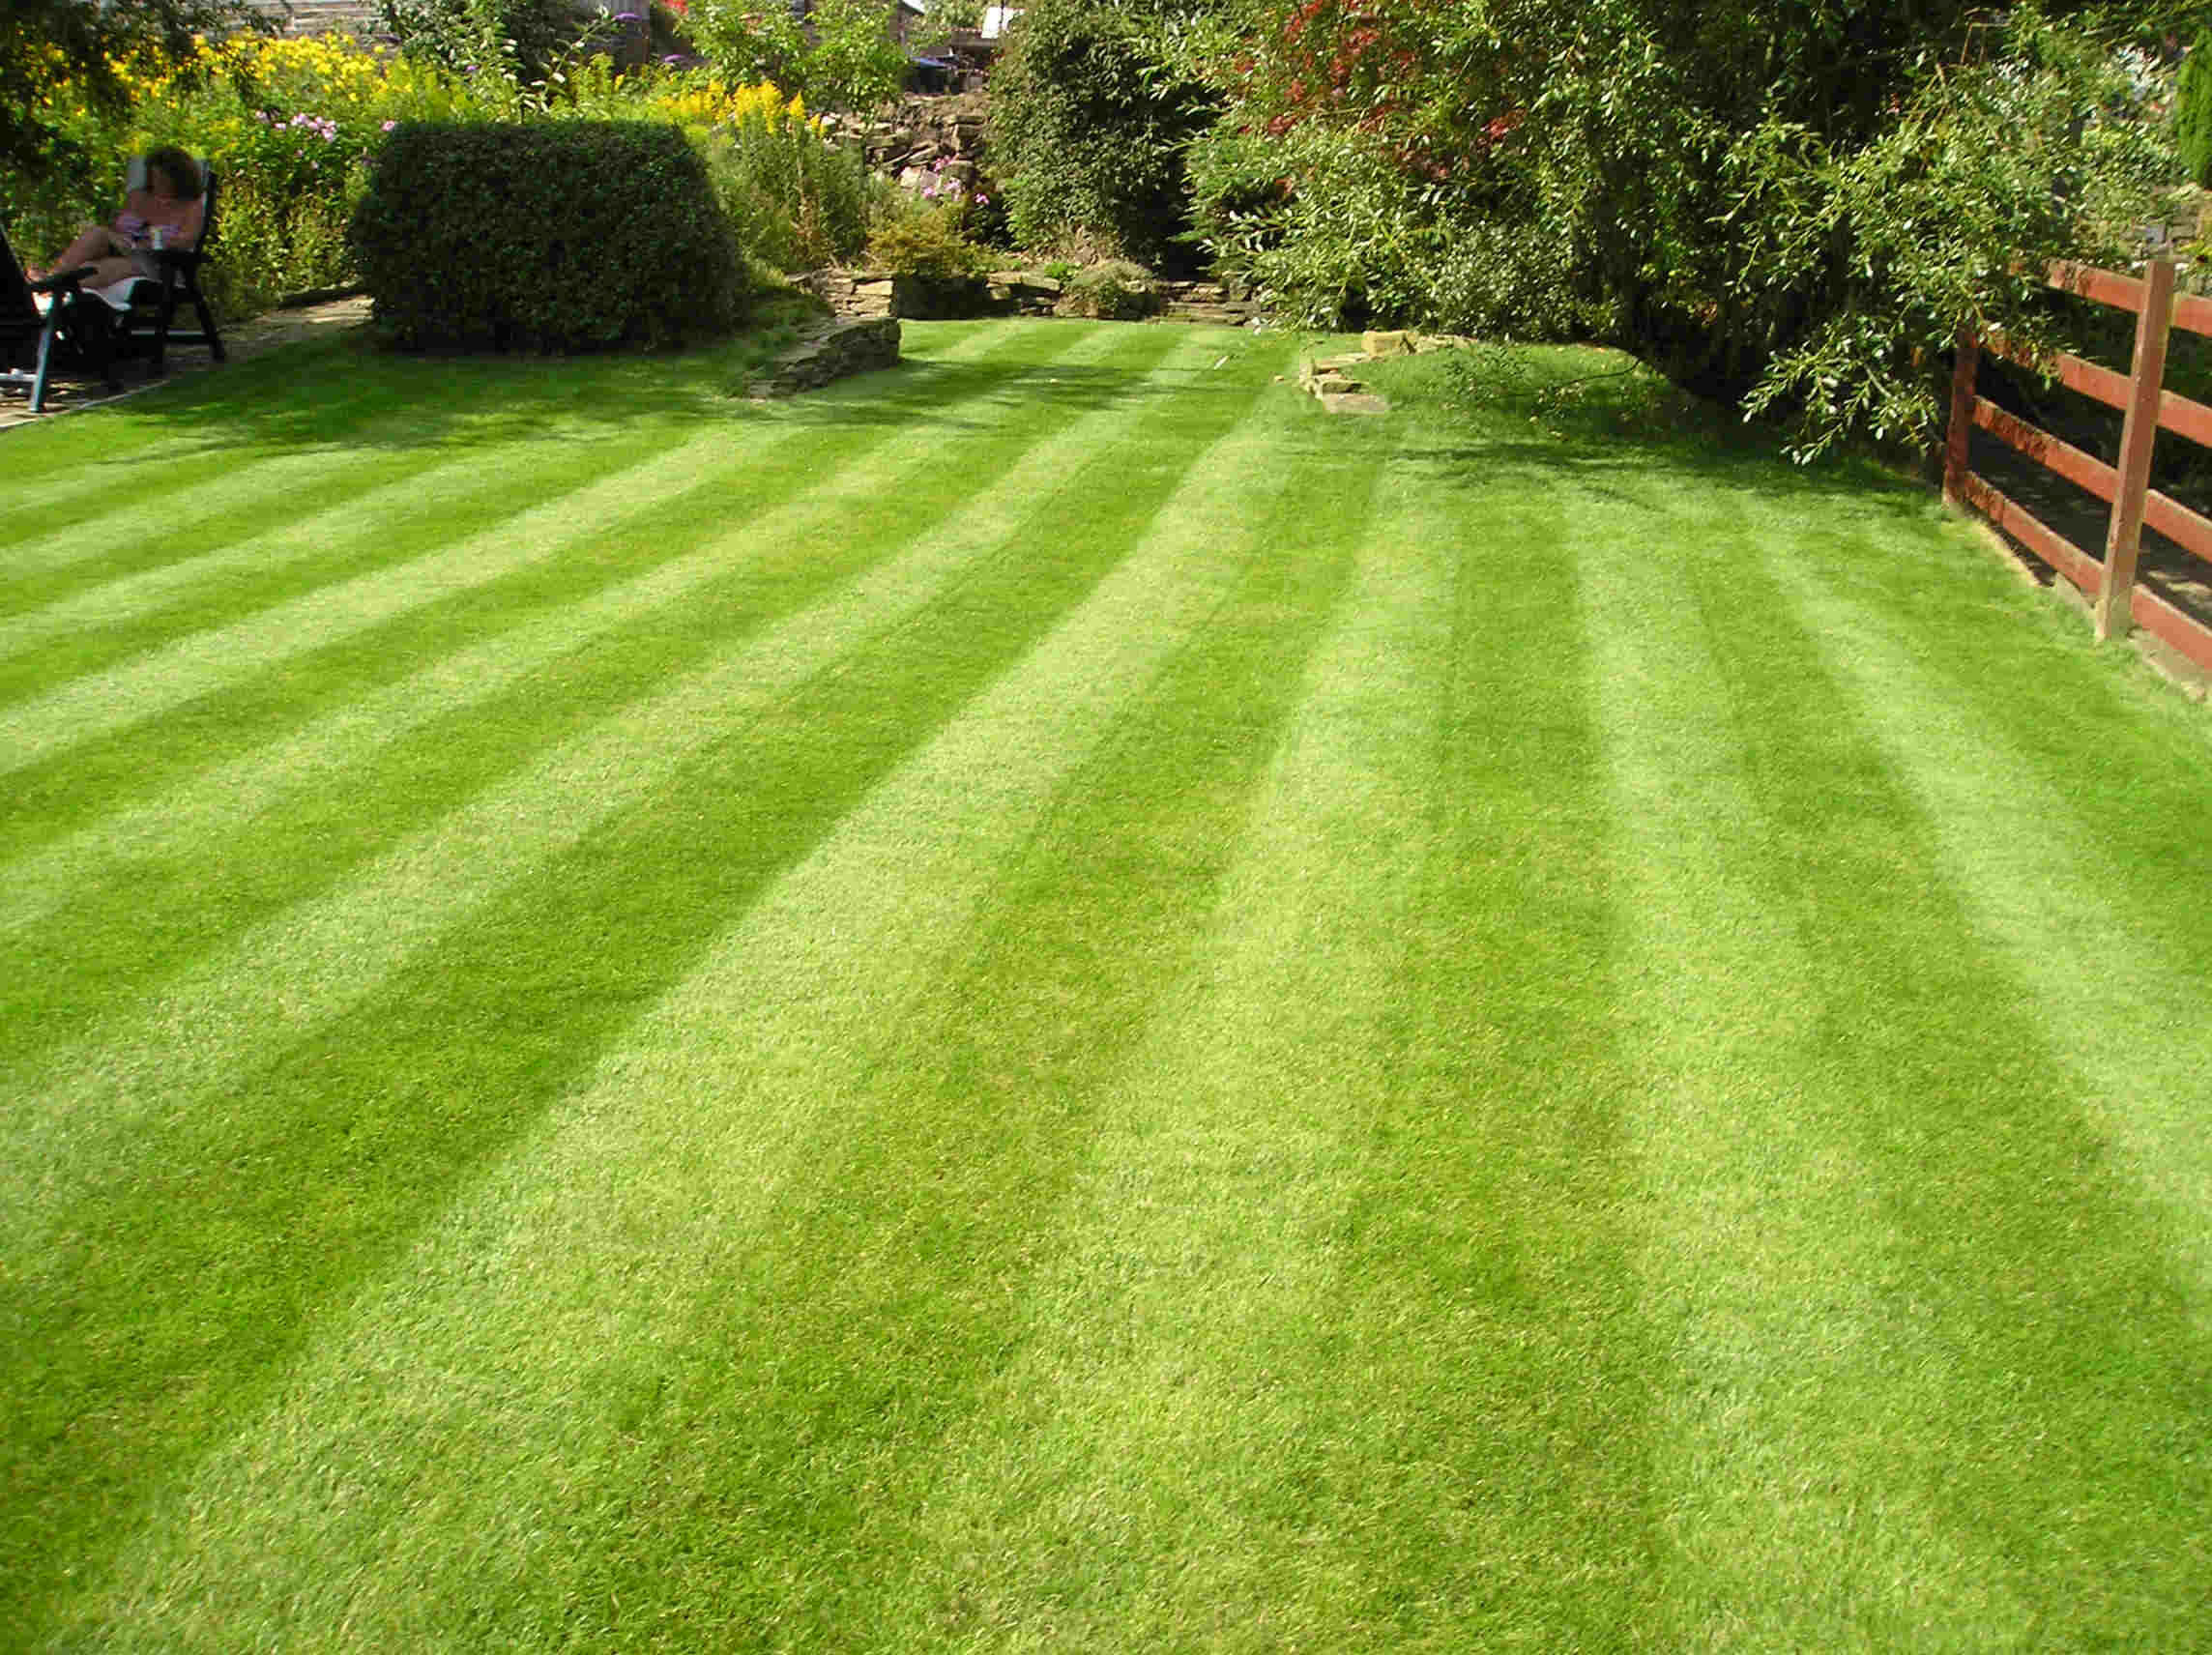 lawn-picture-2.jpg